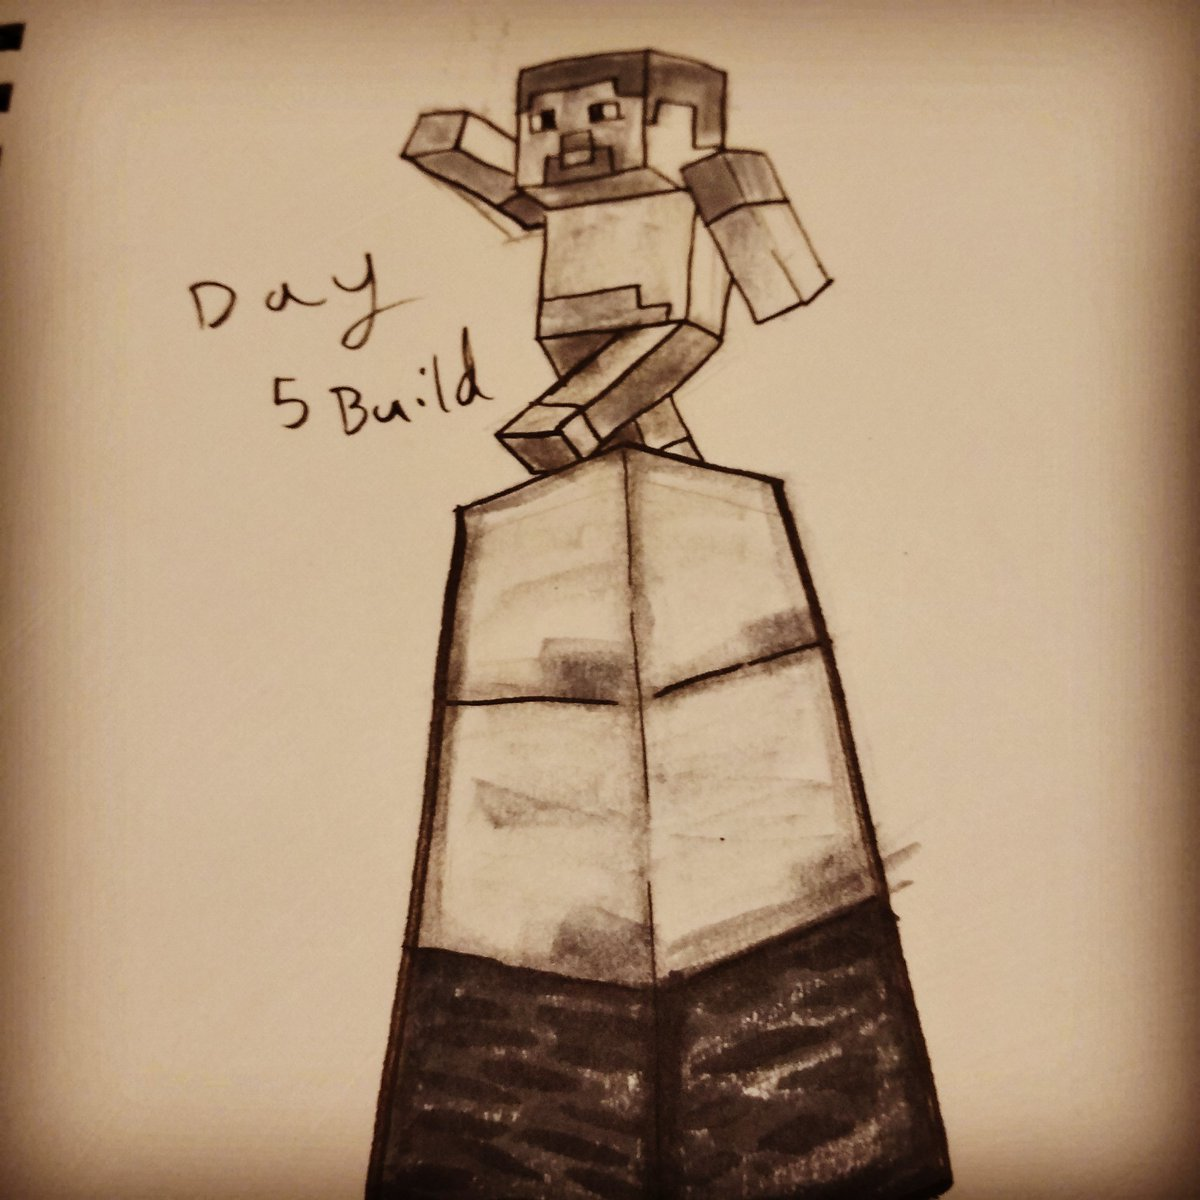 Today was a rushed day so for build I just did Minecraft for my #inktober2019  prompt #build  #fanart  #inktober #inktoberprompt #inkart #quicksketch #animationstudent #artchallengepic.twitter.com/8ehblZoN3J